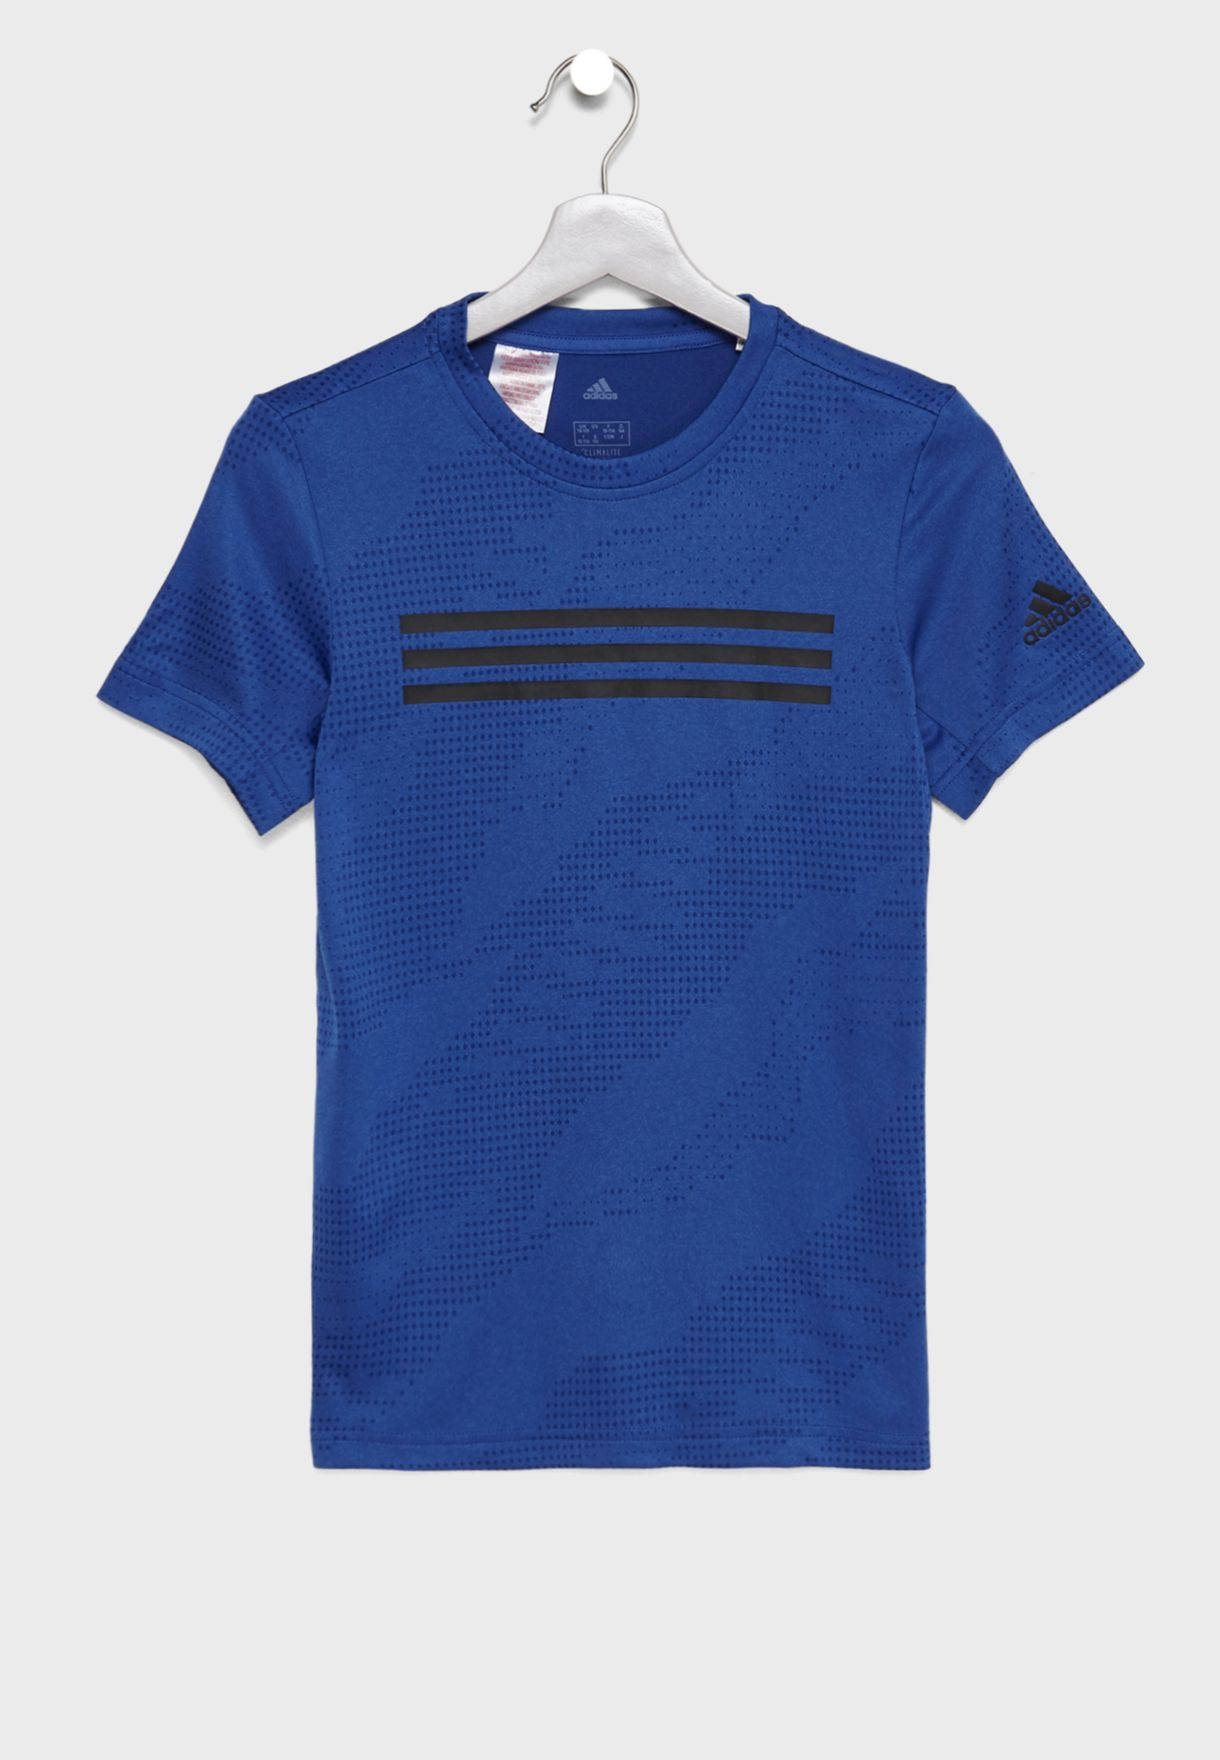 Shop adidas blue Youth Training T-Shirt DJ1155 for Kids in Saudi -  AD476AT59HKA f0acf46e35df7